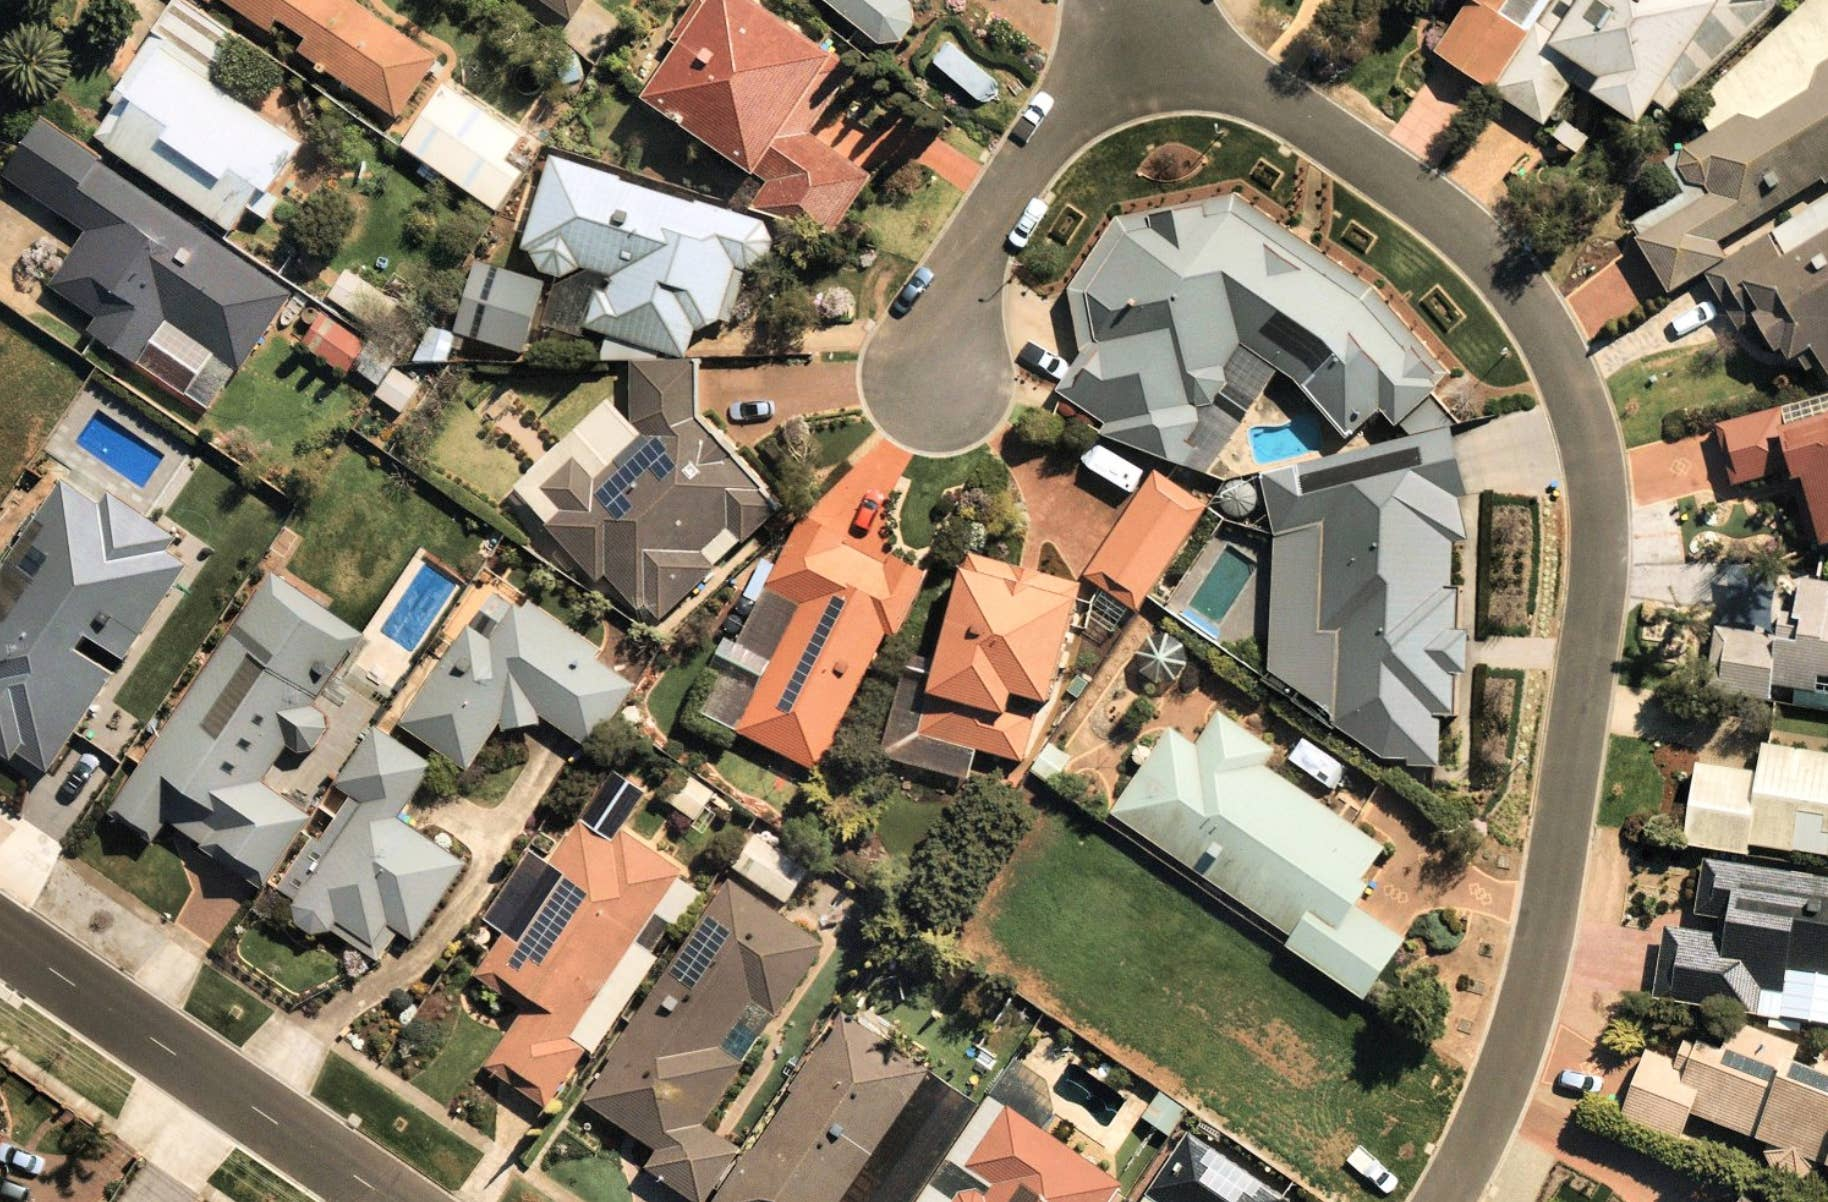 residential solar panels, Werribee, VIC, 2019 Oct 01